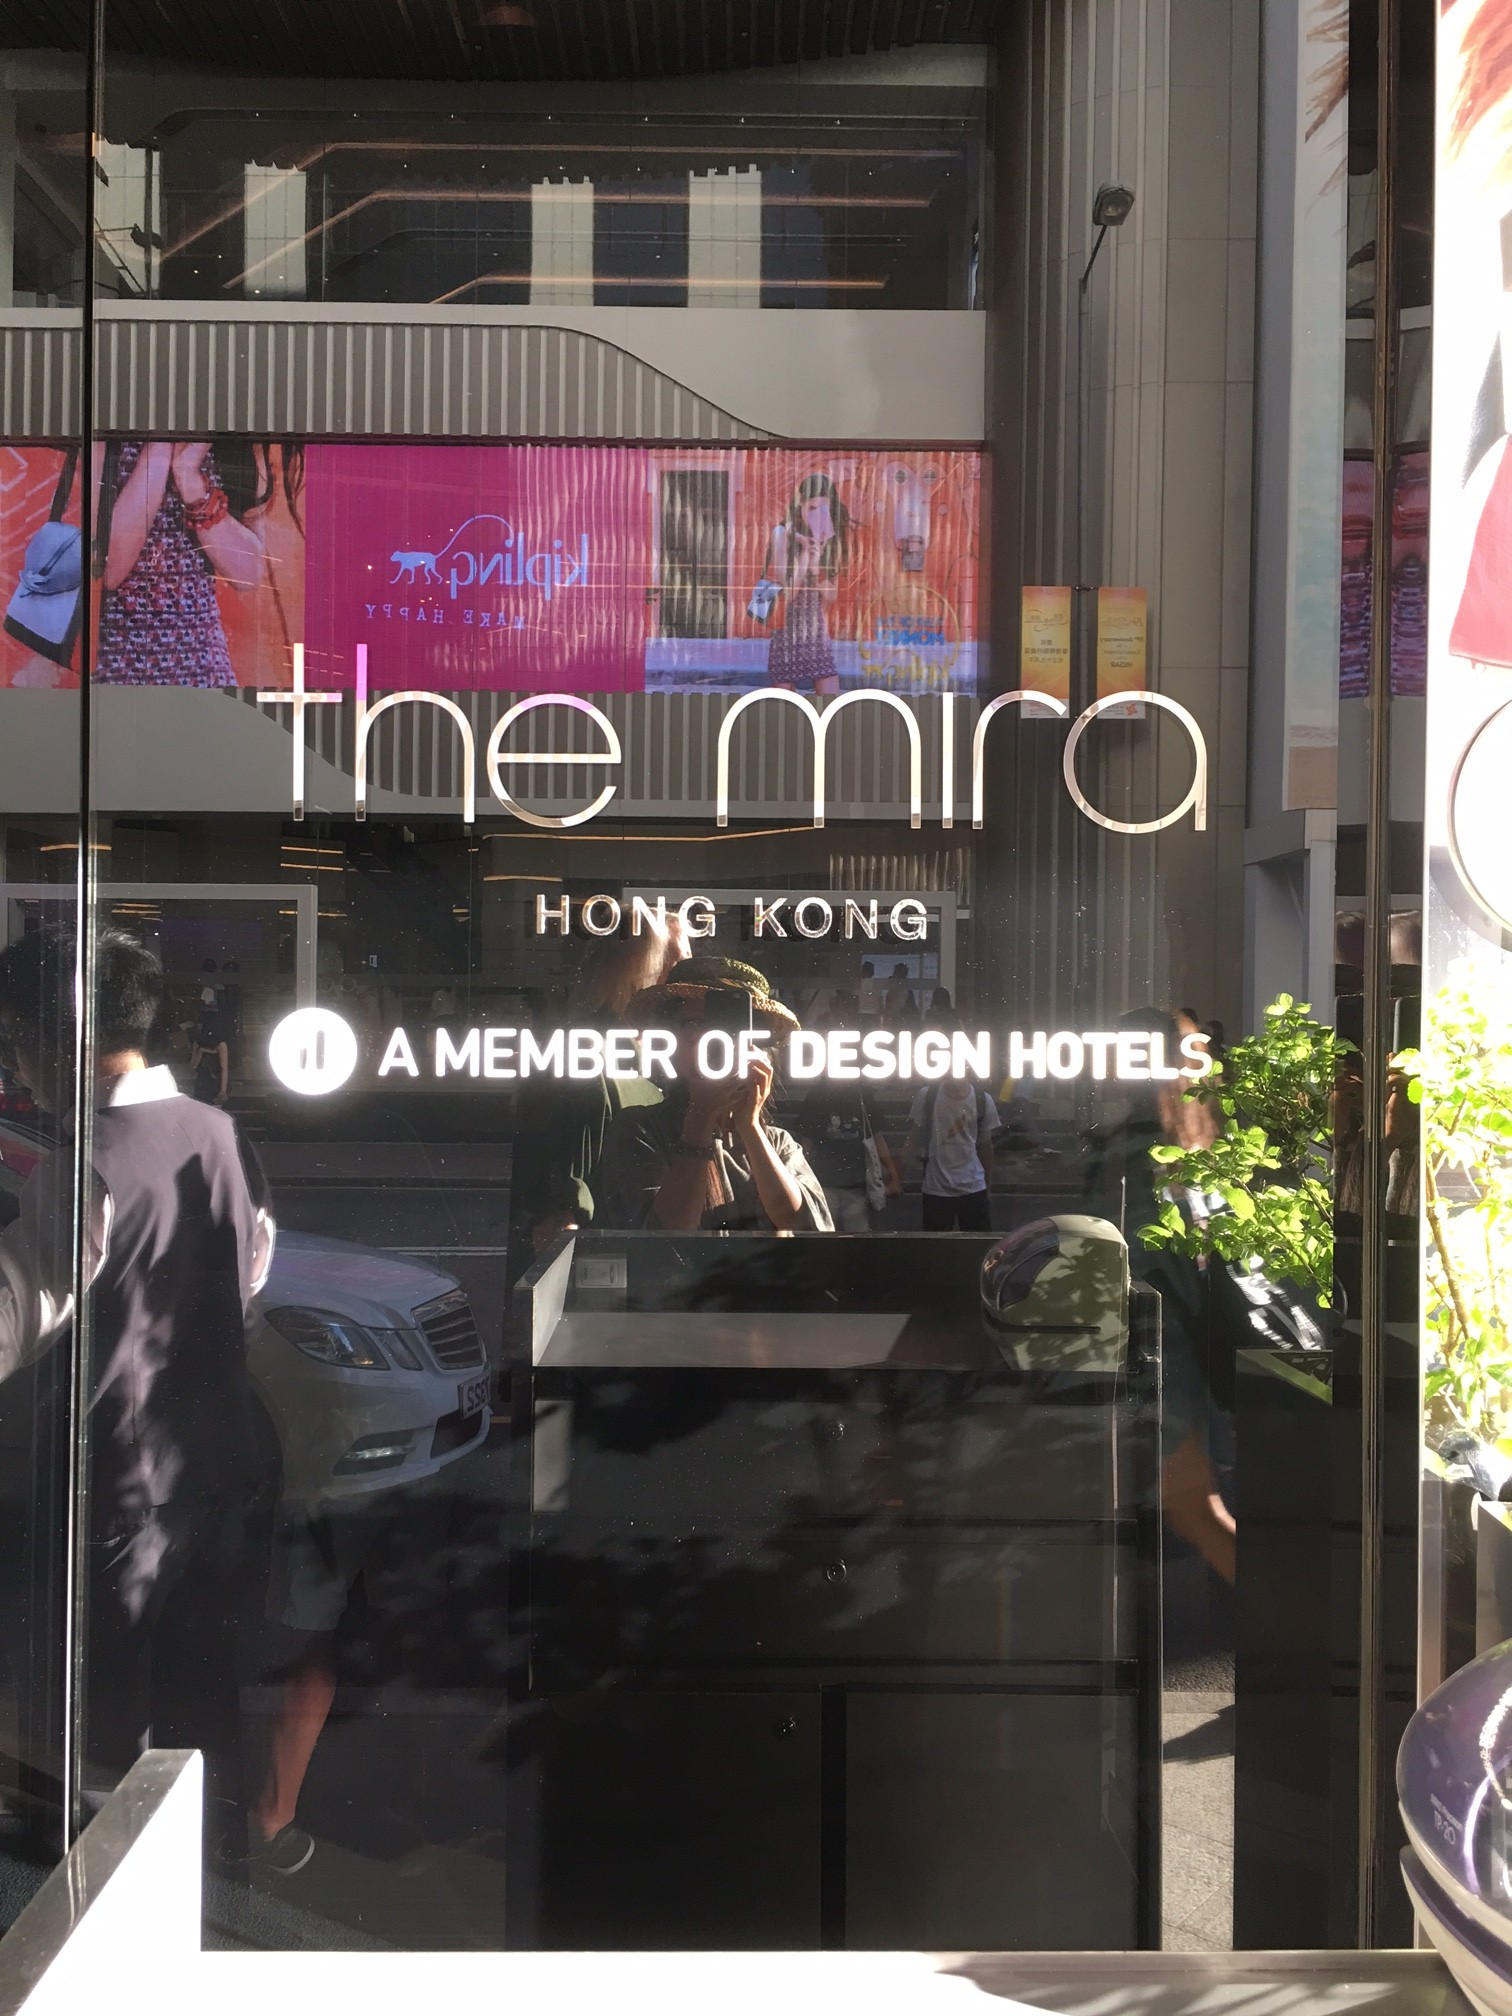 Visiting Mira Hotel Where Edward Snowden Met Glenn Greenwald